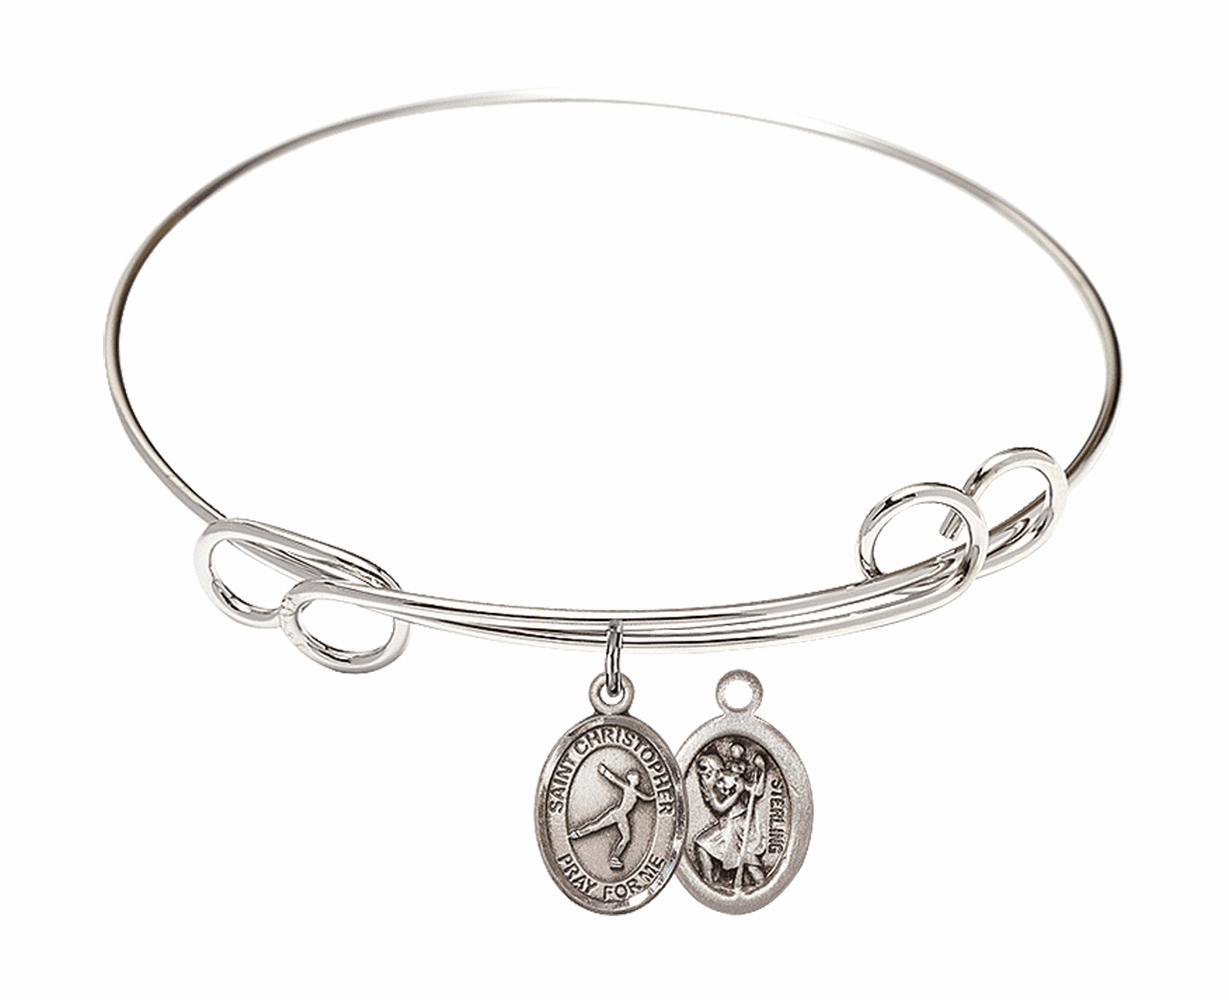 Round Loop St Christopher Figure Skating Bangle Charm Bracelet by Bliss